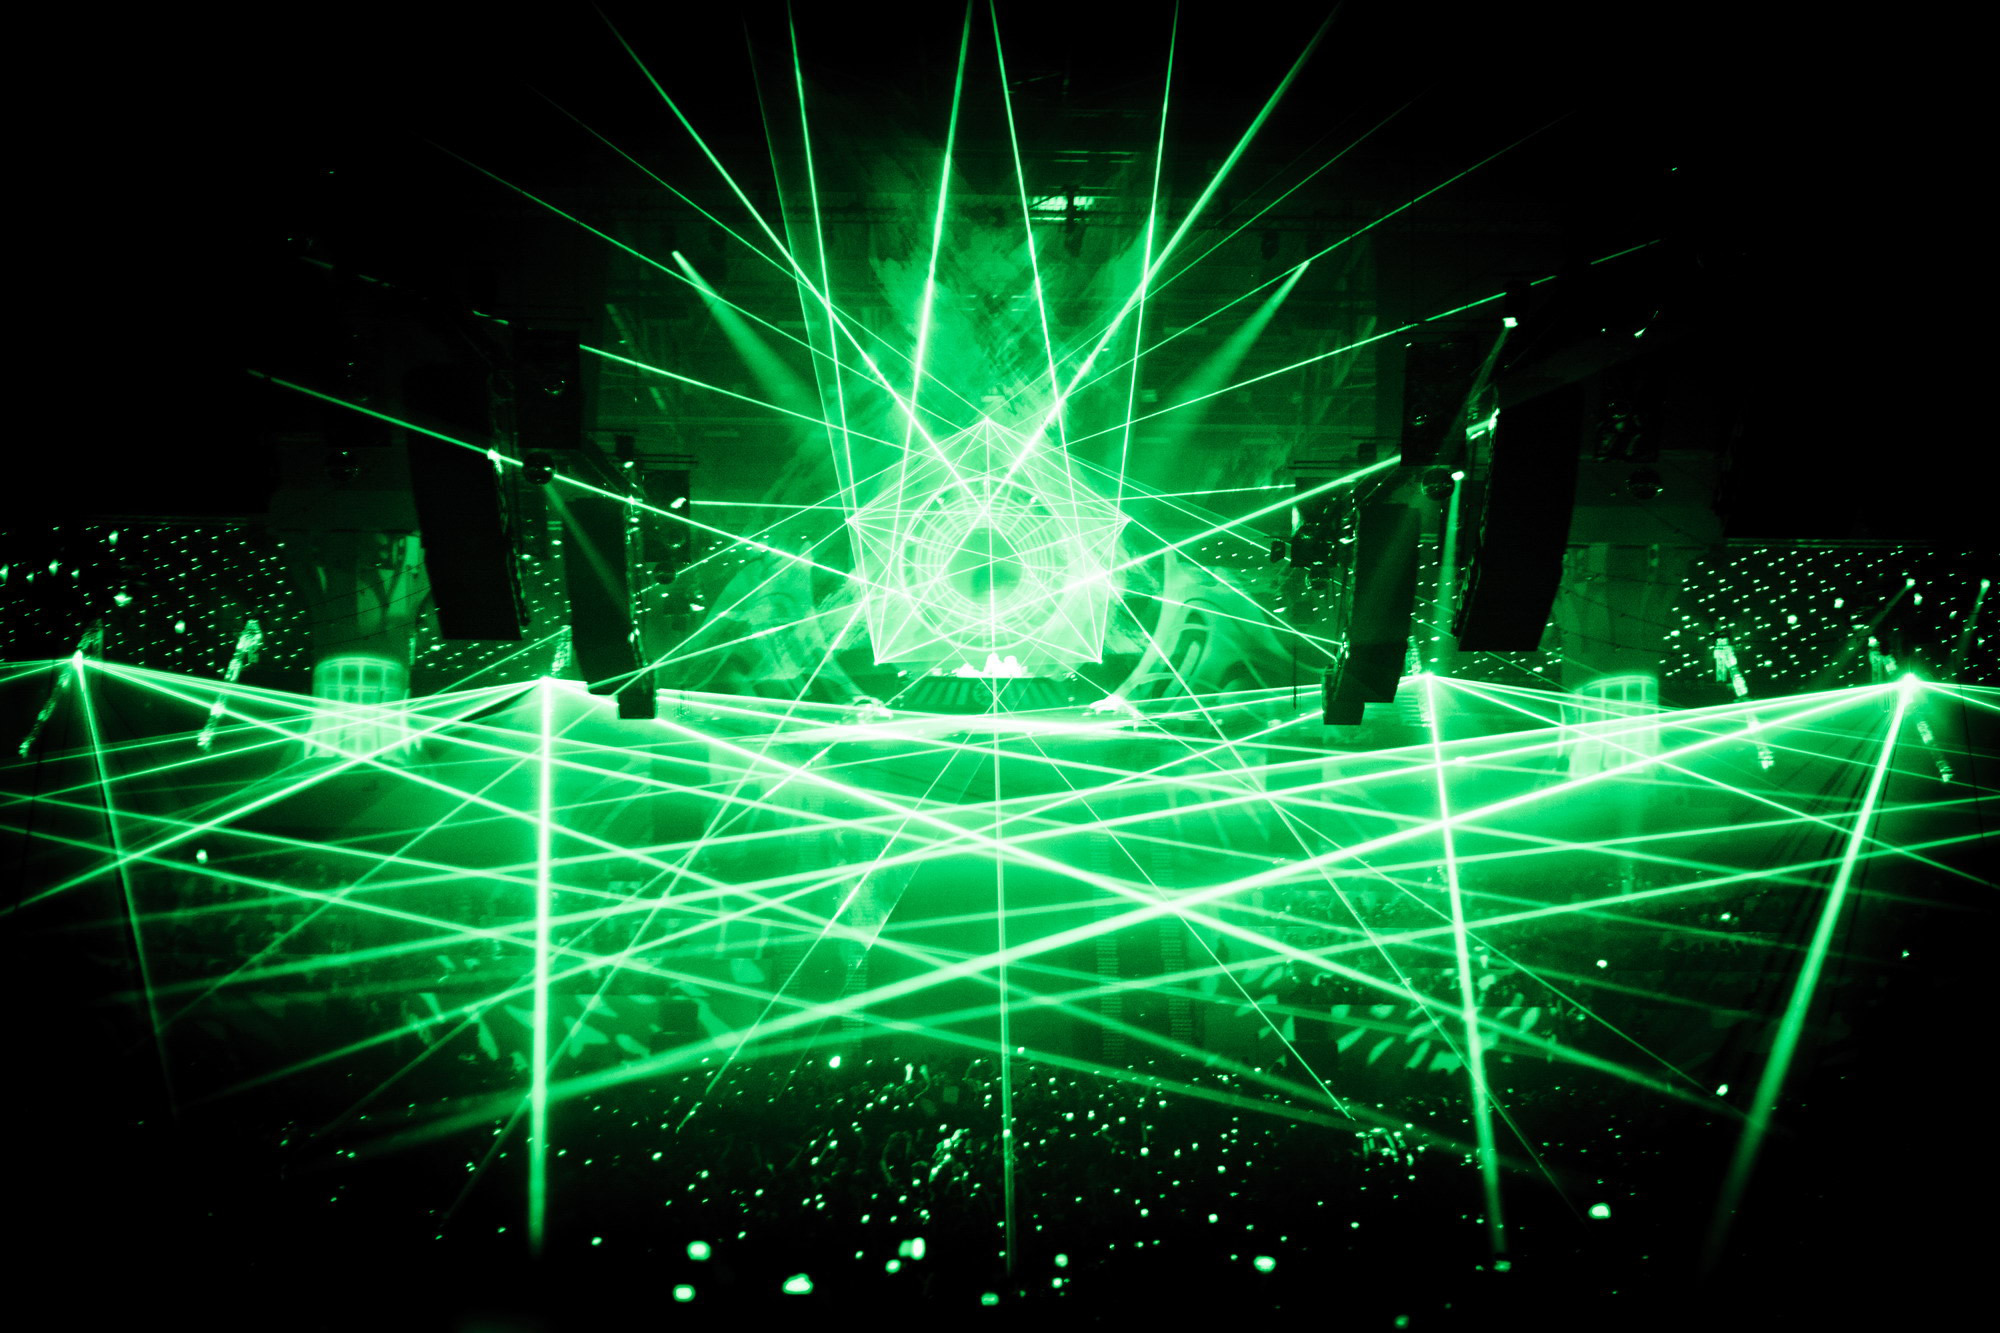 qlimax hardstyle 2010 Q-Dance HD Wallpaper